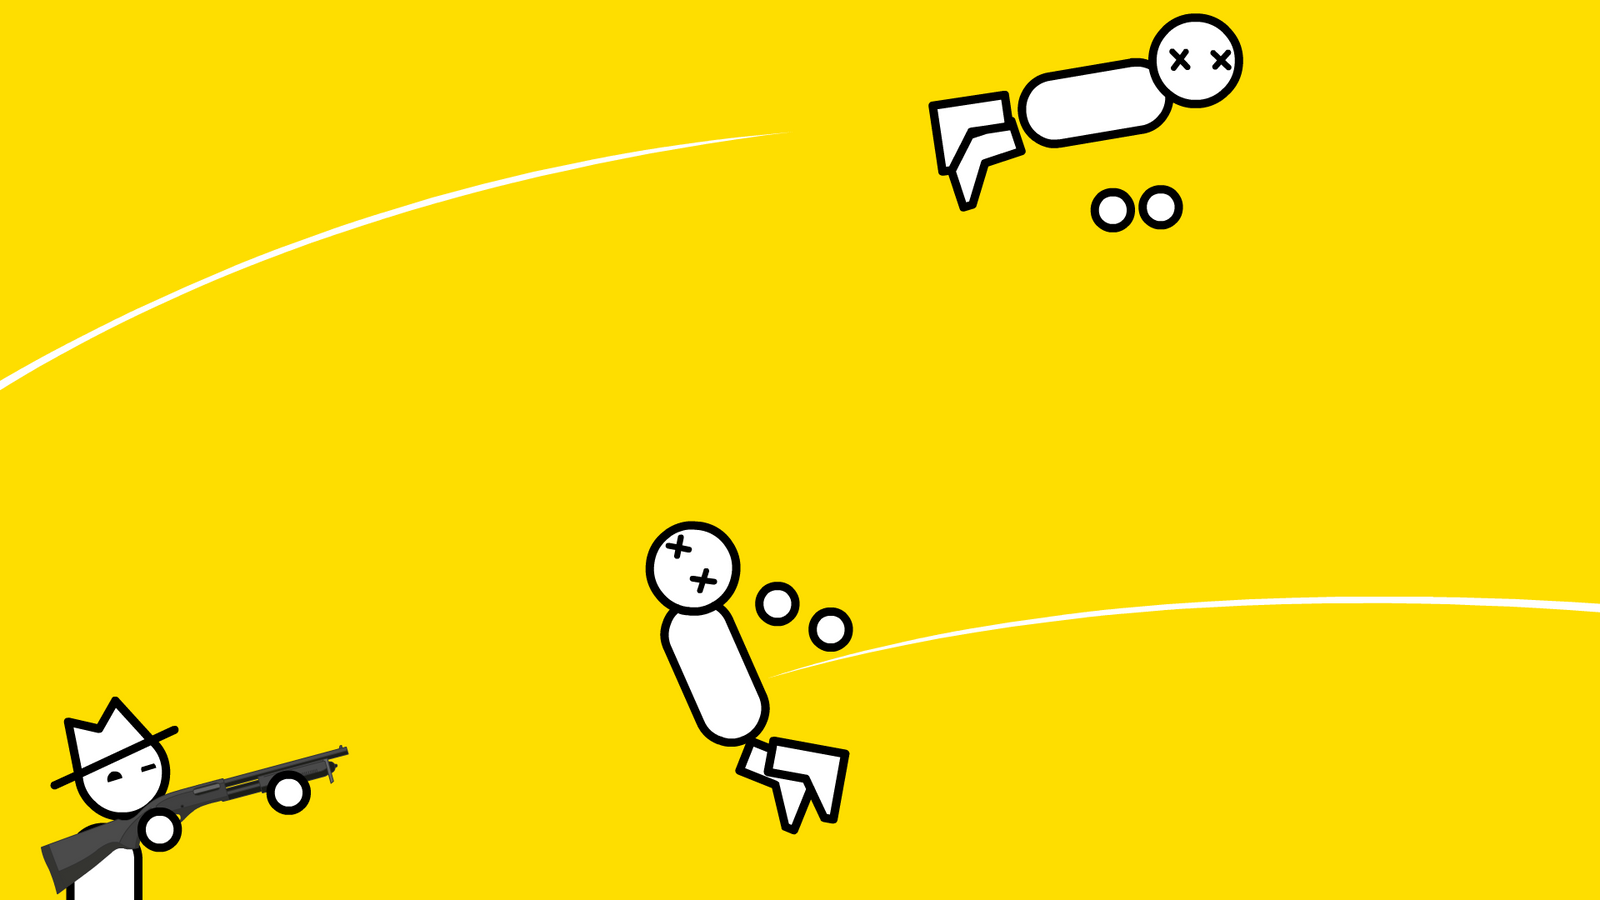 Zero Punctuation Corps Shootin by sinned2bsaved on DeviantArt